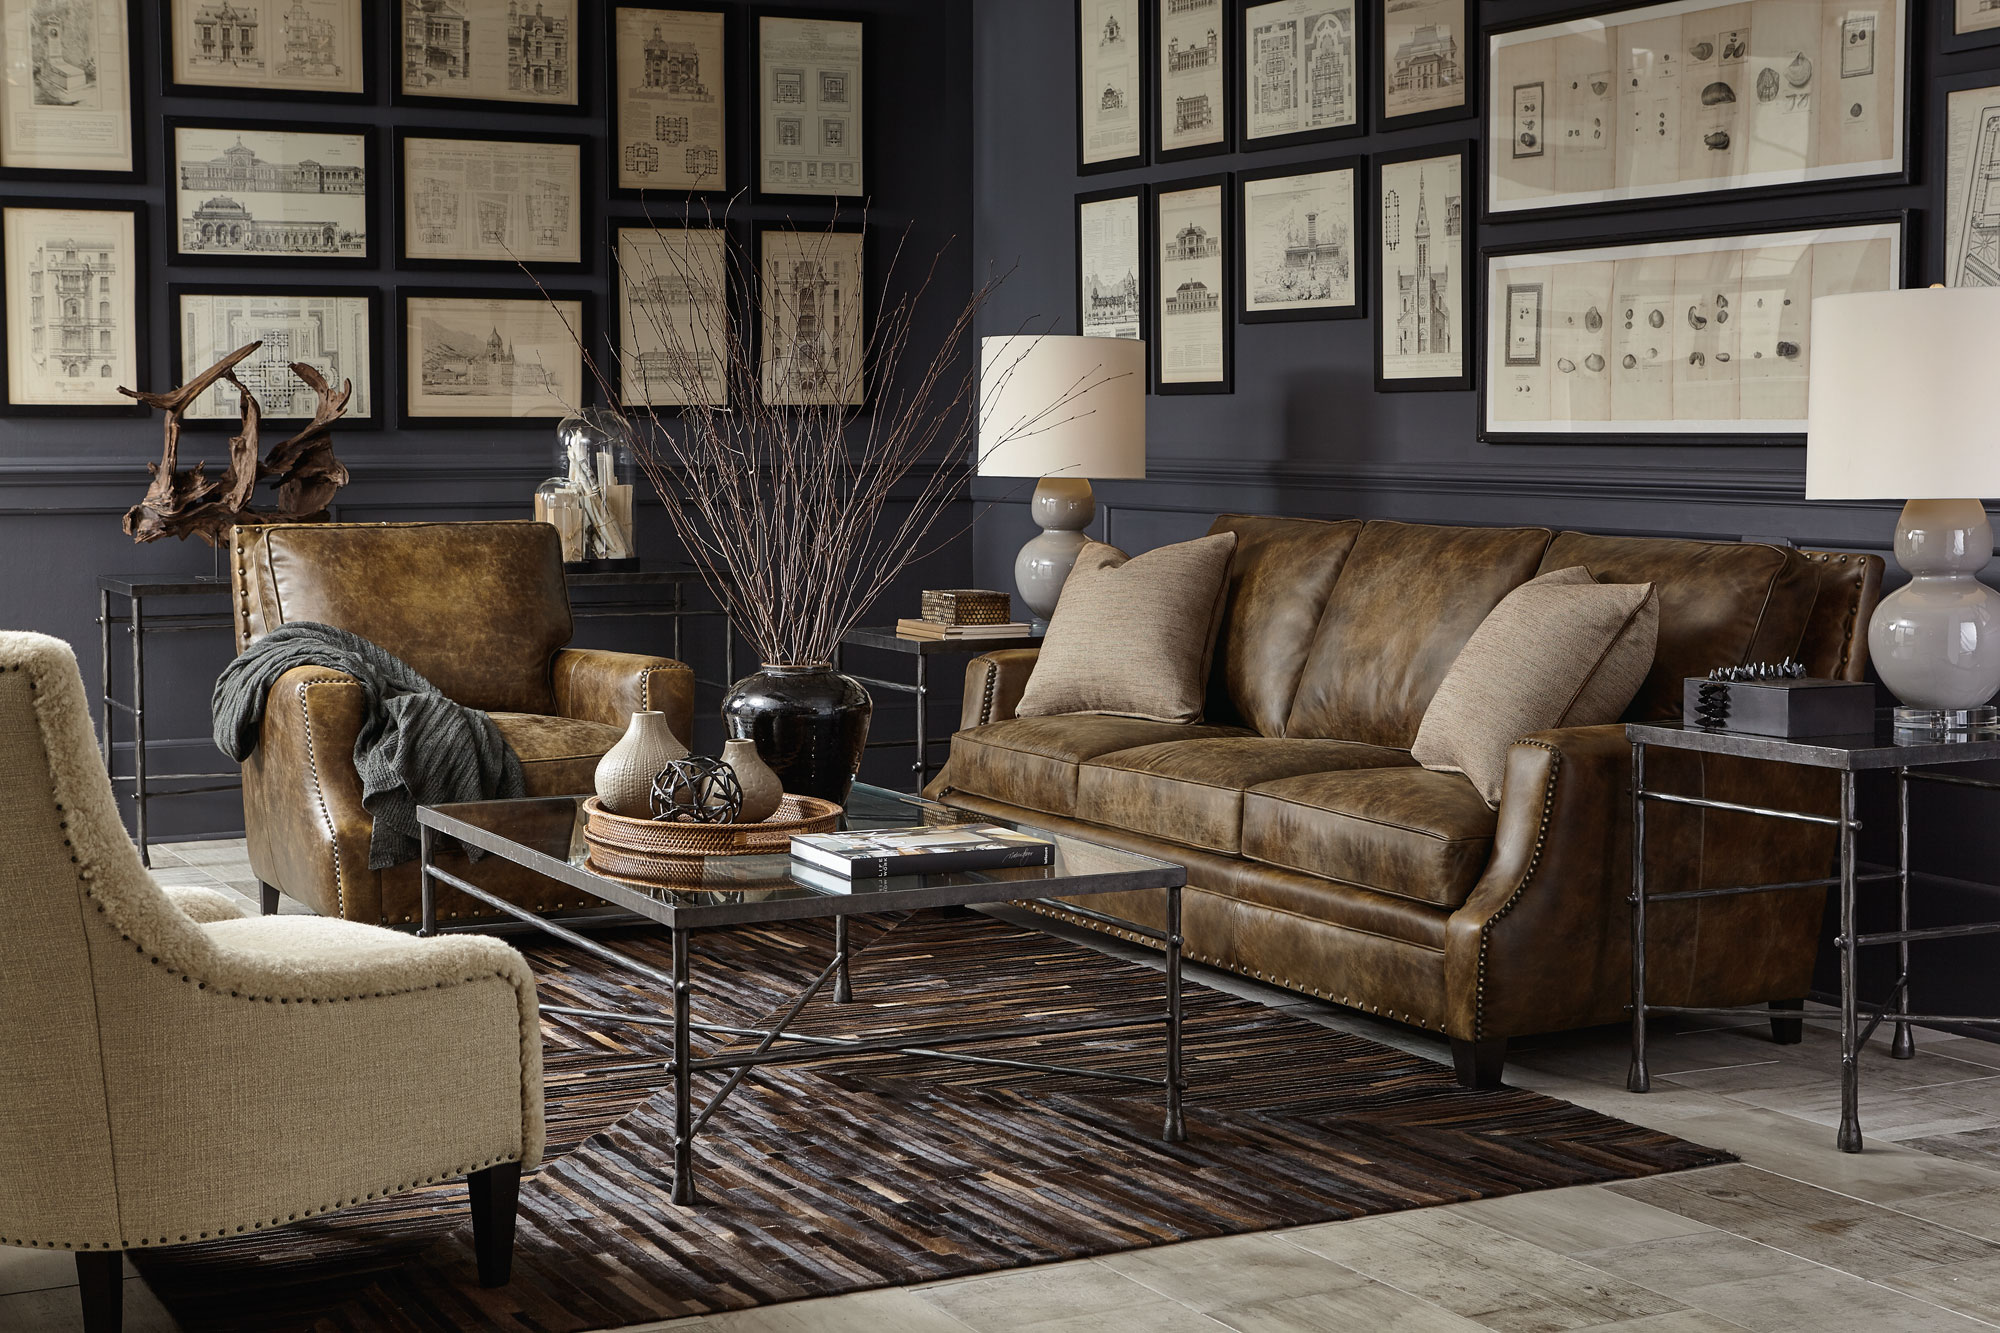 The 5 interior design trends you should know for fall and 4 trends its time to let go